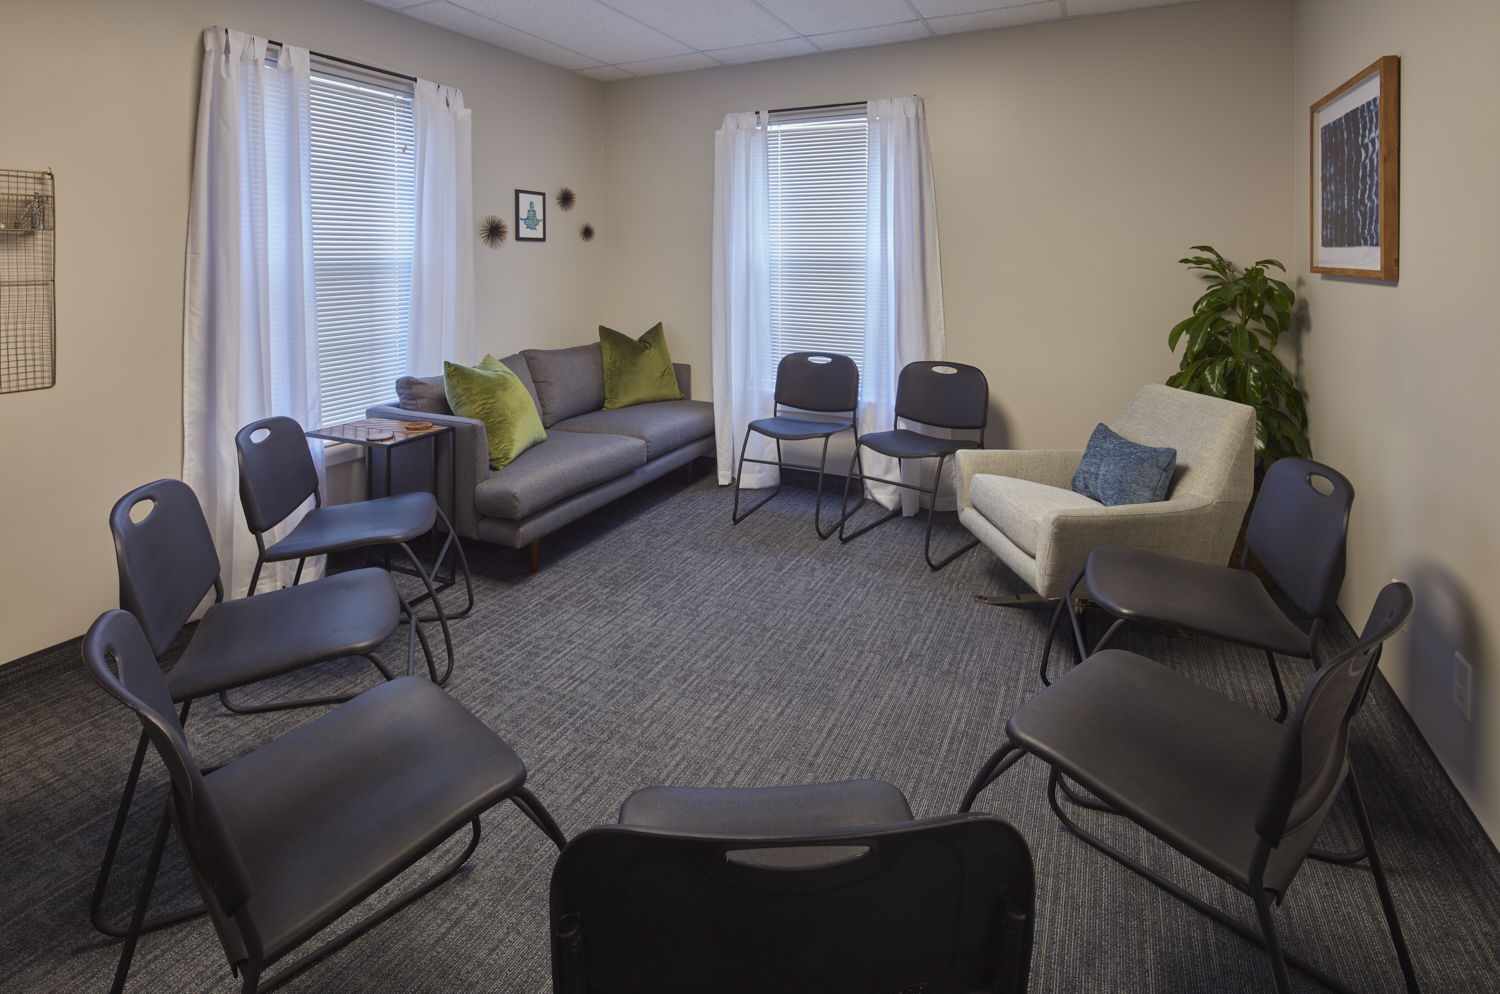 b.mindful Louisville Group Room (Moberly Photography)